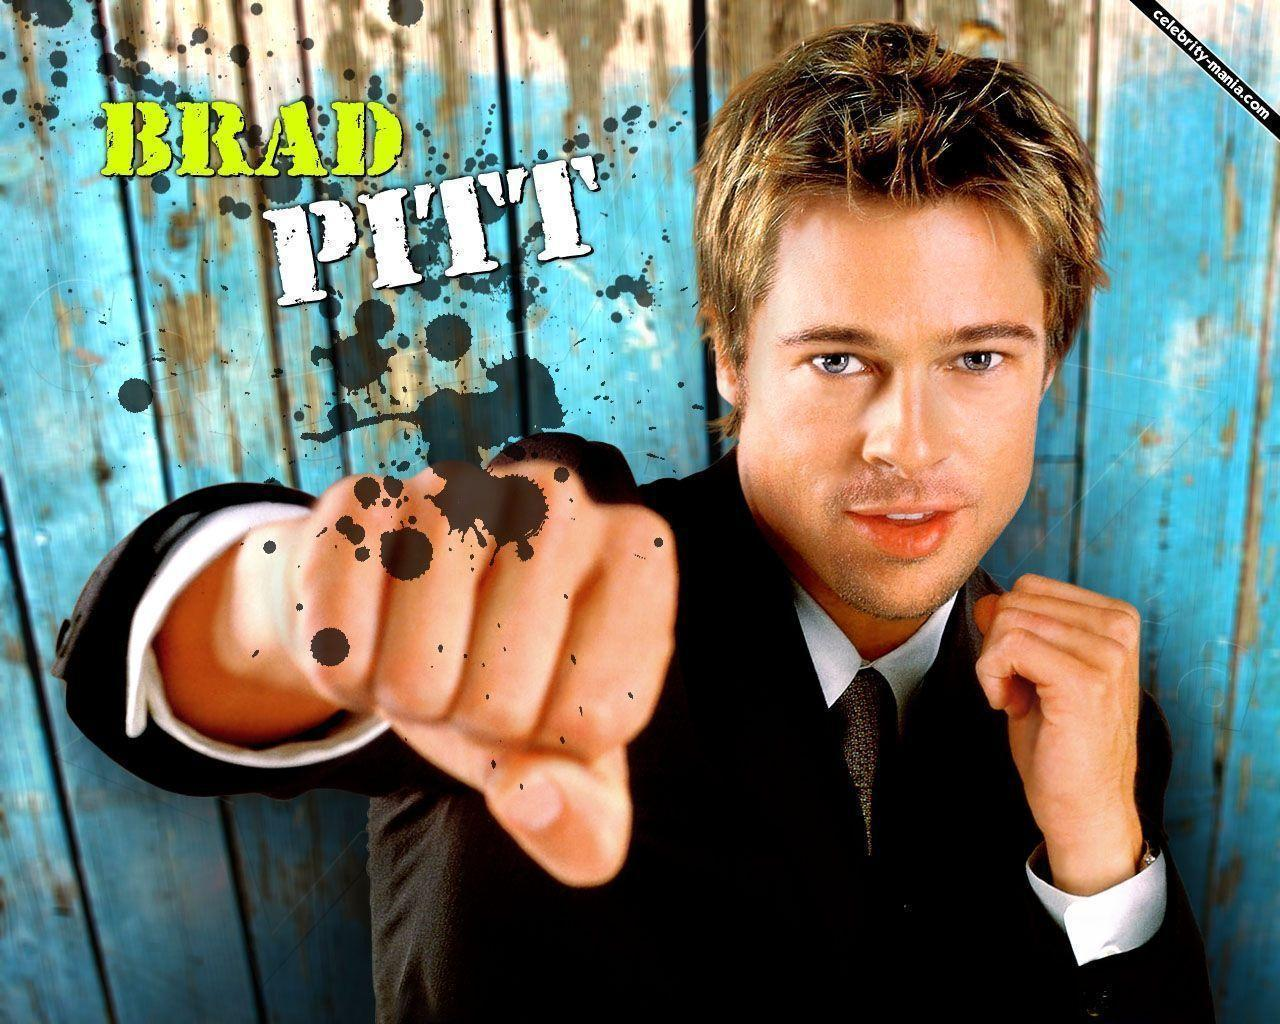 Brad Pitt Widescreen Background Wallpaper - Celebrities Powericare.